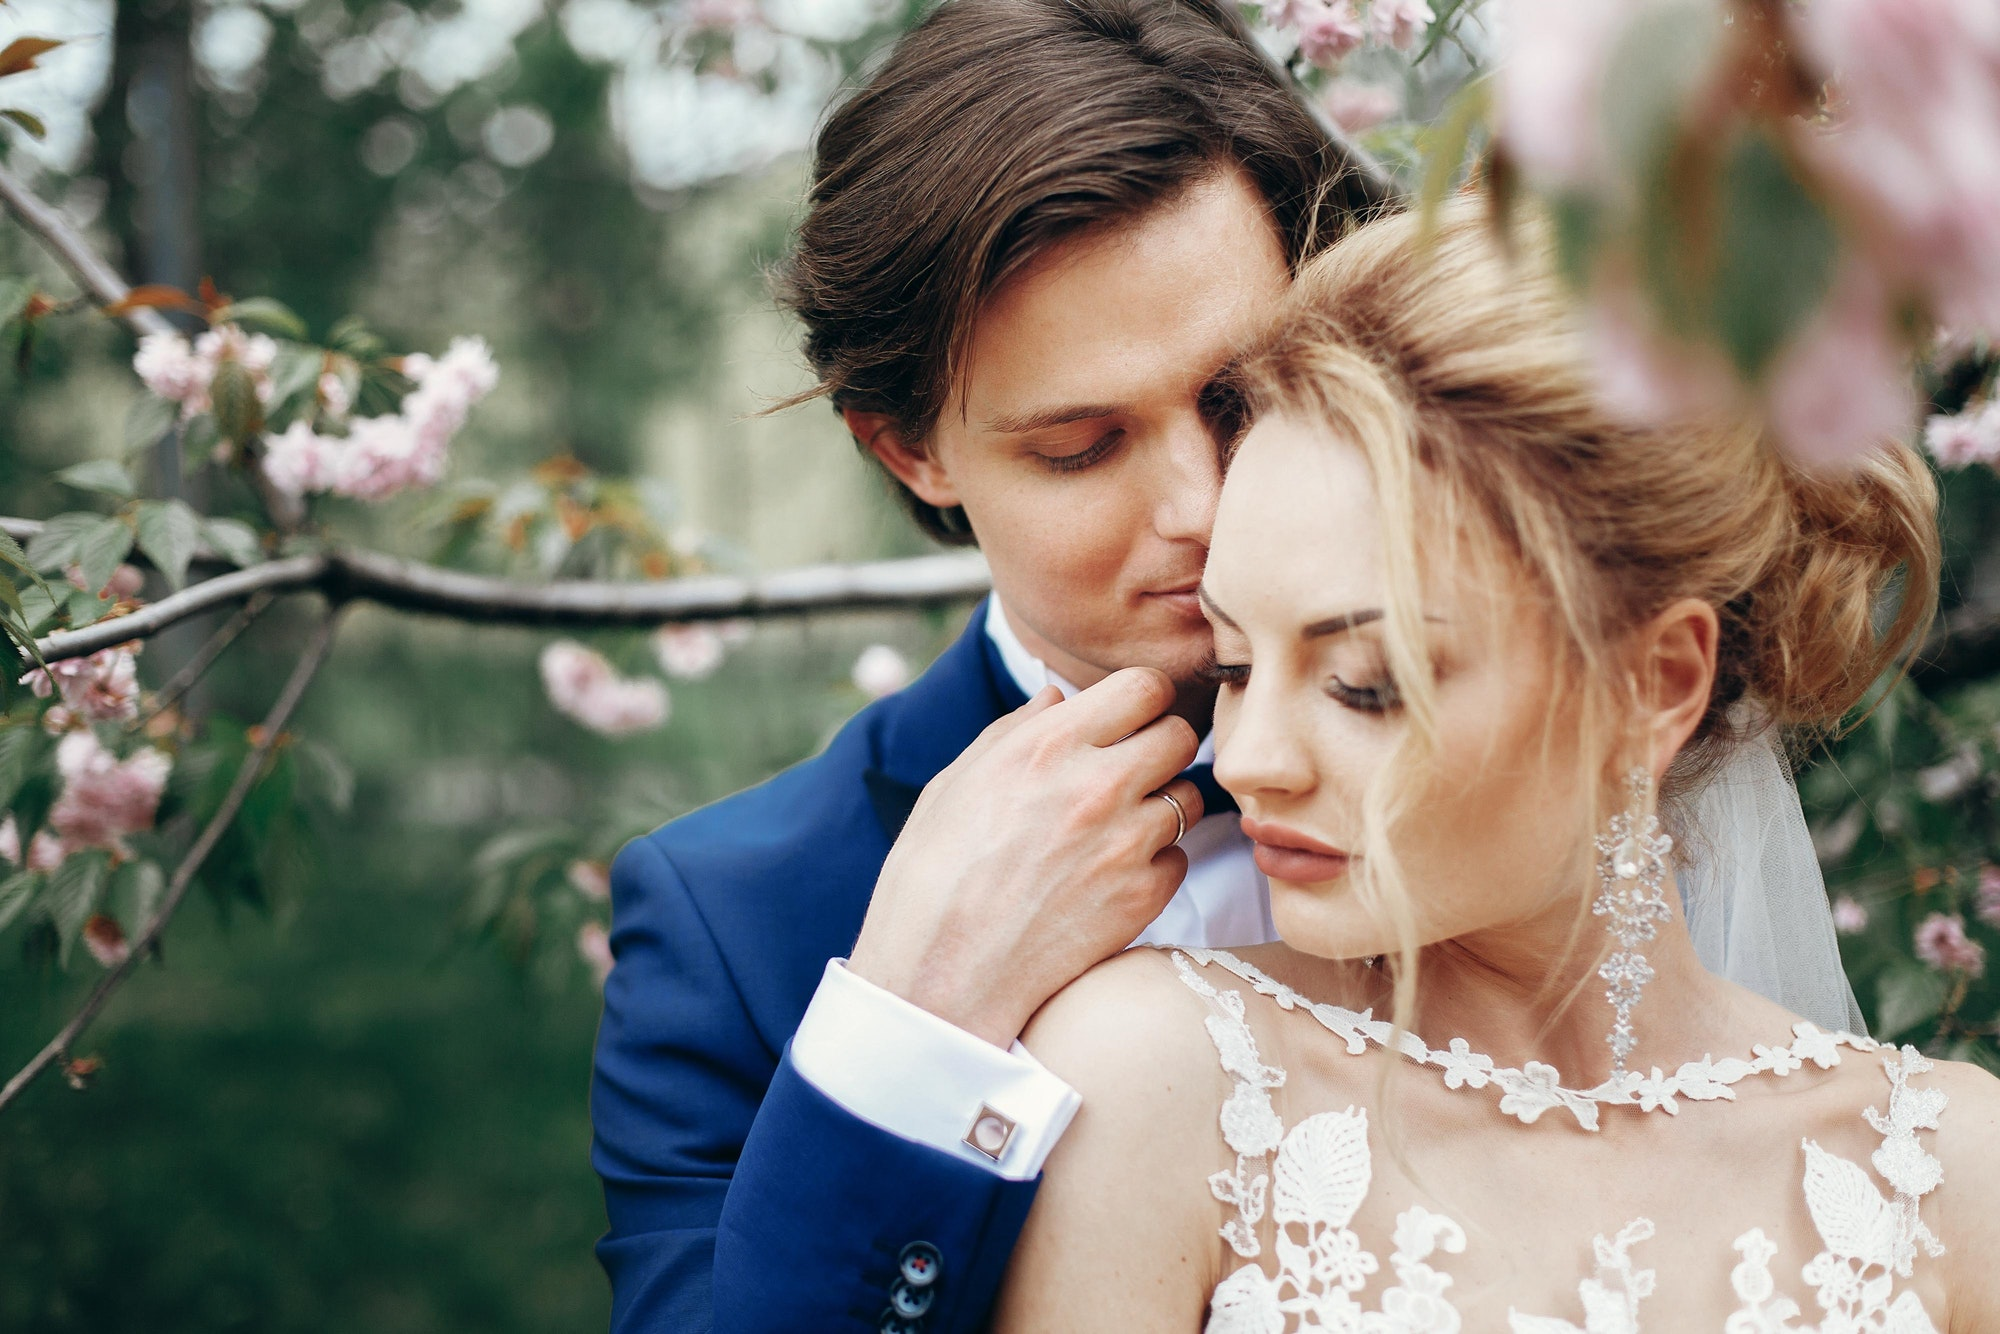 Bride and groom embracing and kissing in park among magnolia flowers